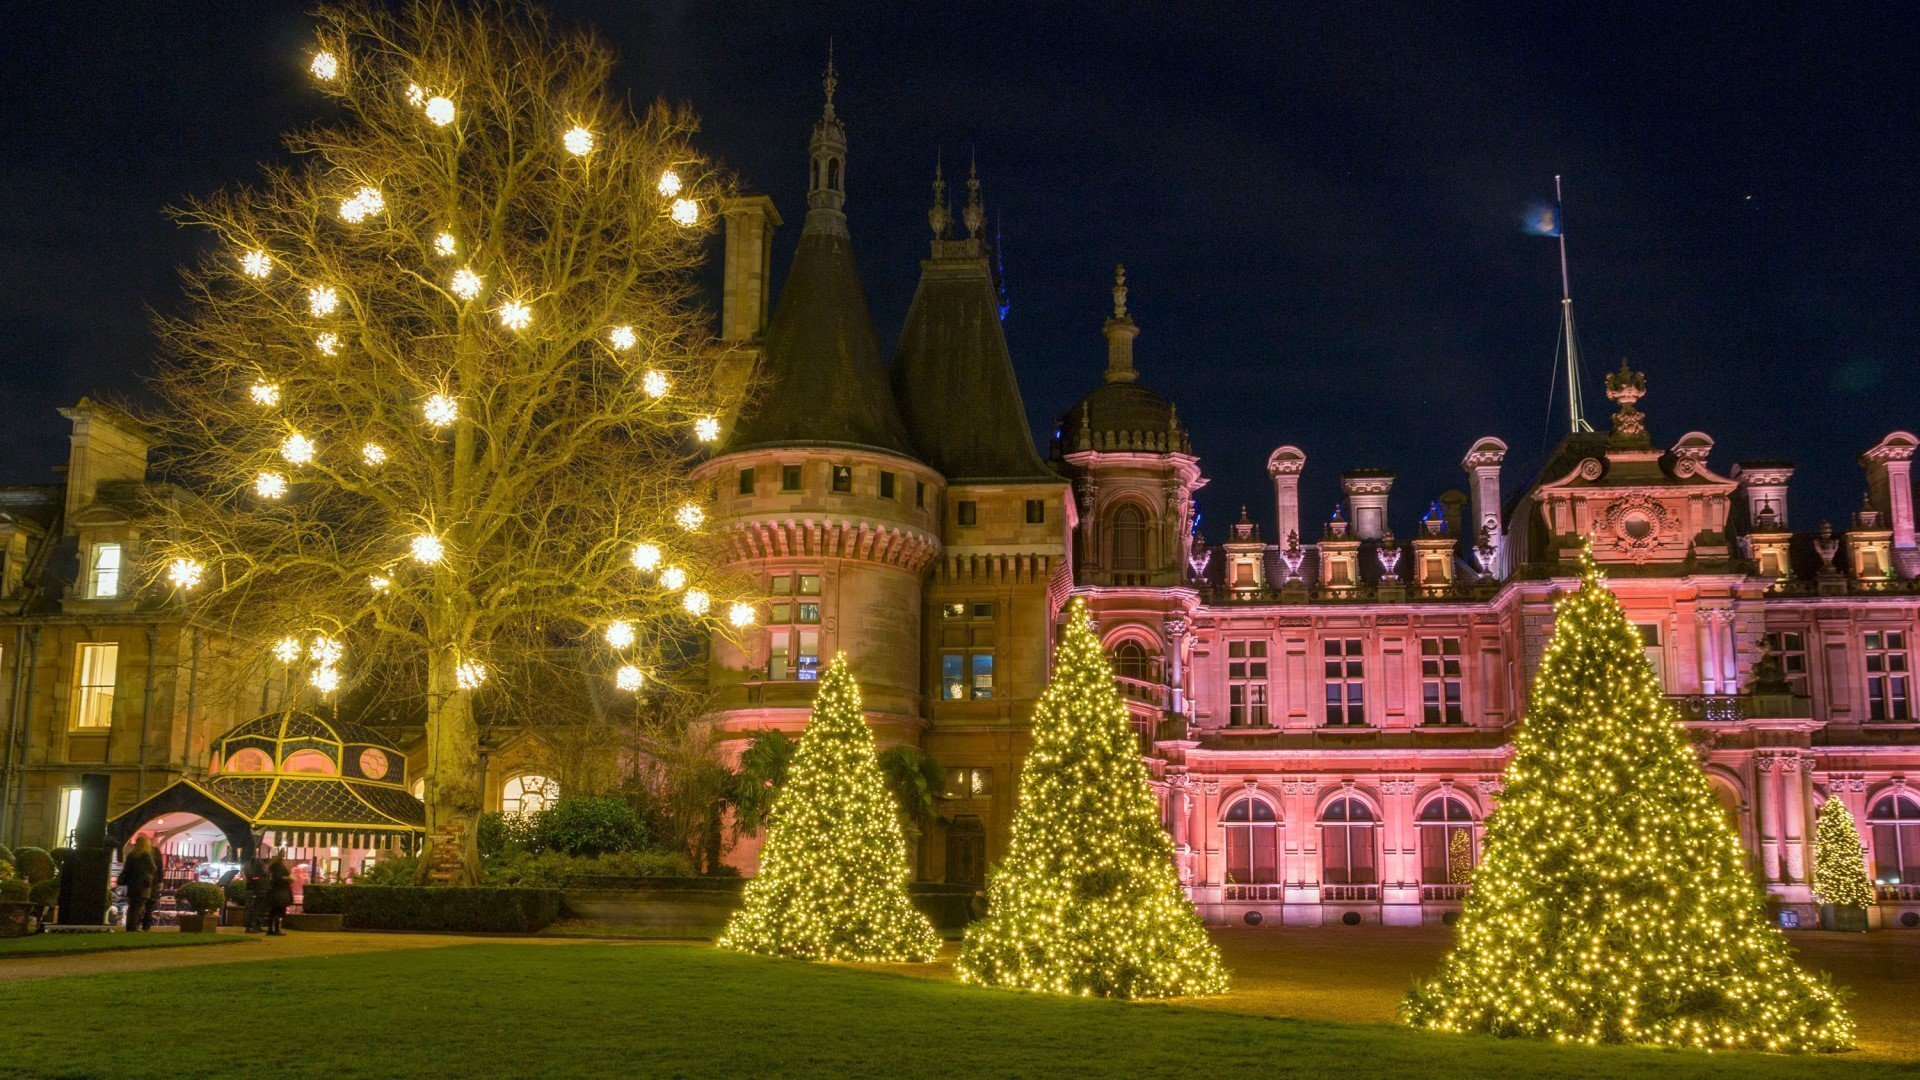 Christmas 2020 at Waddesdon Manor. Image: Waddesdon Manor Illuminated. National Trust / Hugh Mothersole